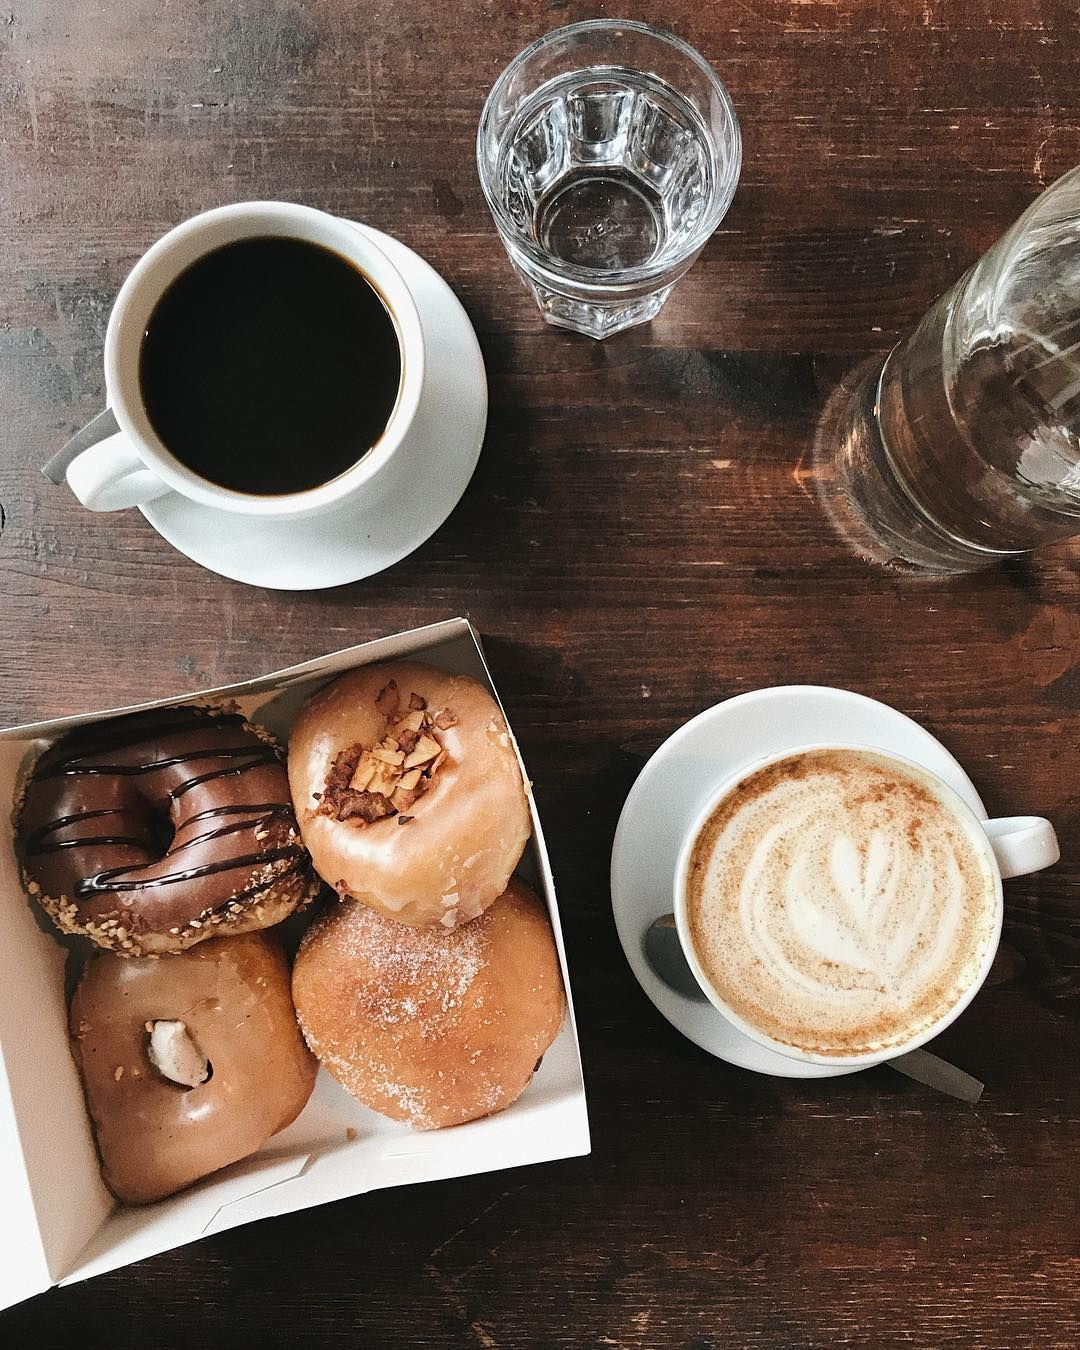 The best donuts & pumpkin spice latte I've ever had courtesy of : @brammibalsdonuts Already planning a trip to Berlin to go back to this place (and many others)